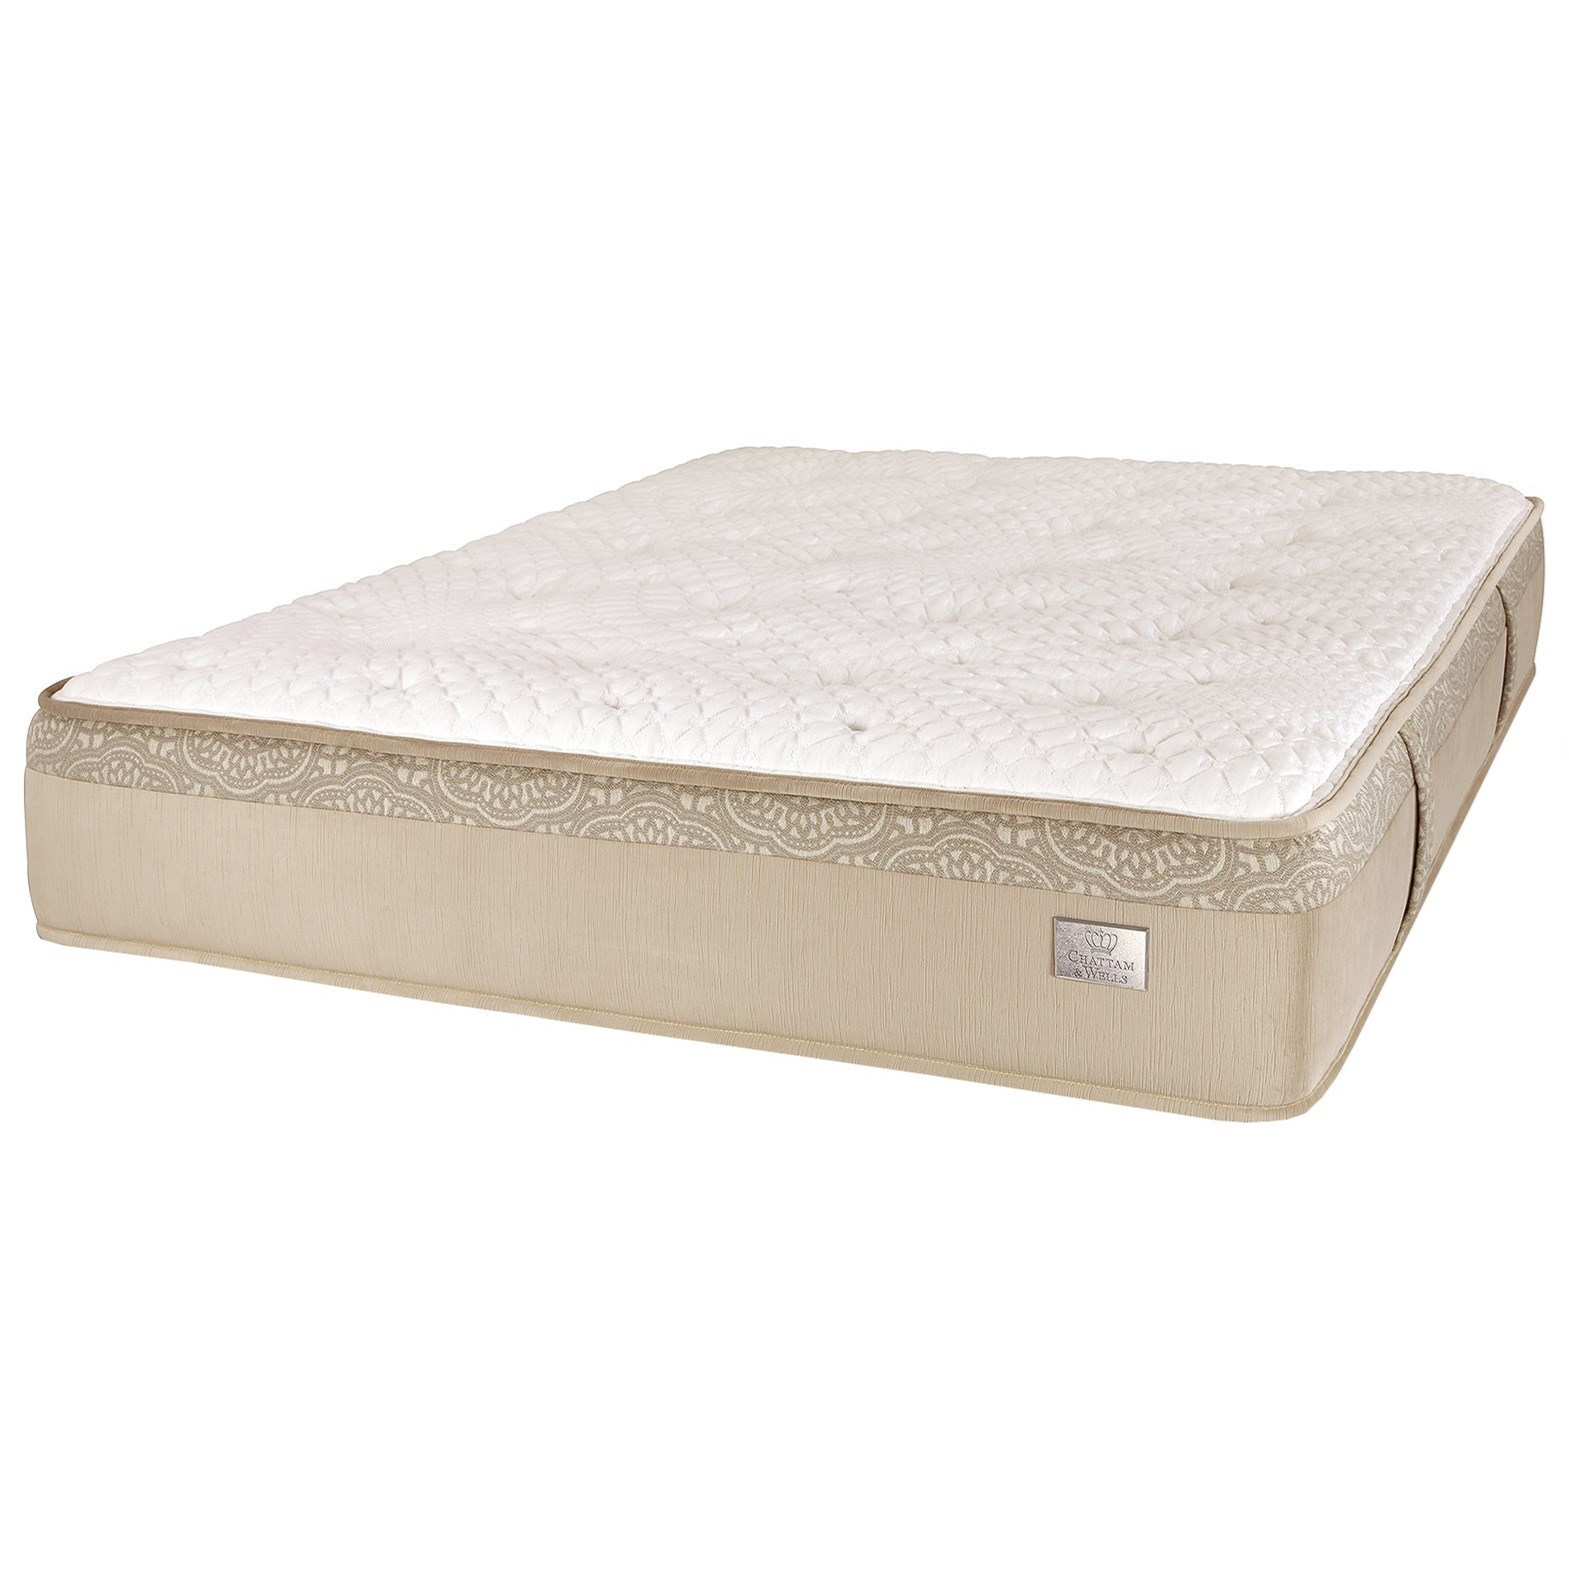 Crown Plush Queen Pocketed Coil Mattress by Spring Air at Steger's Furniture